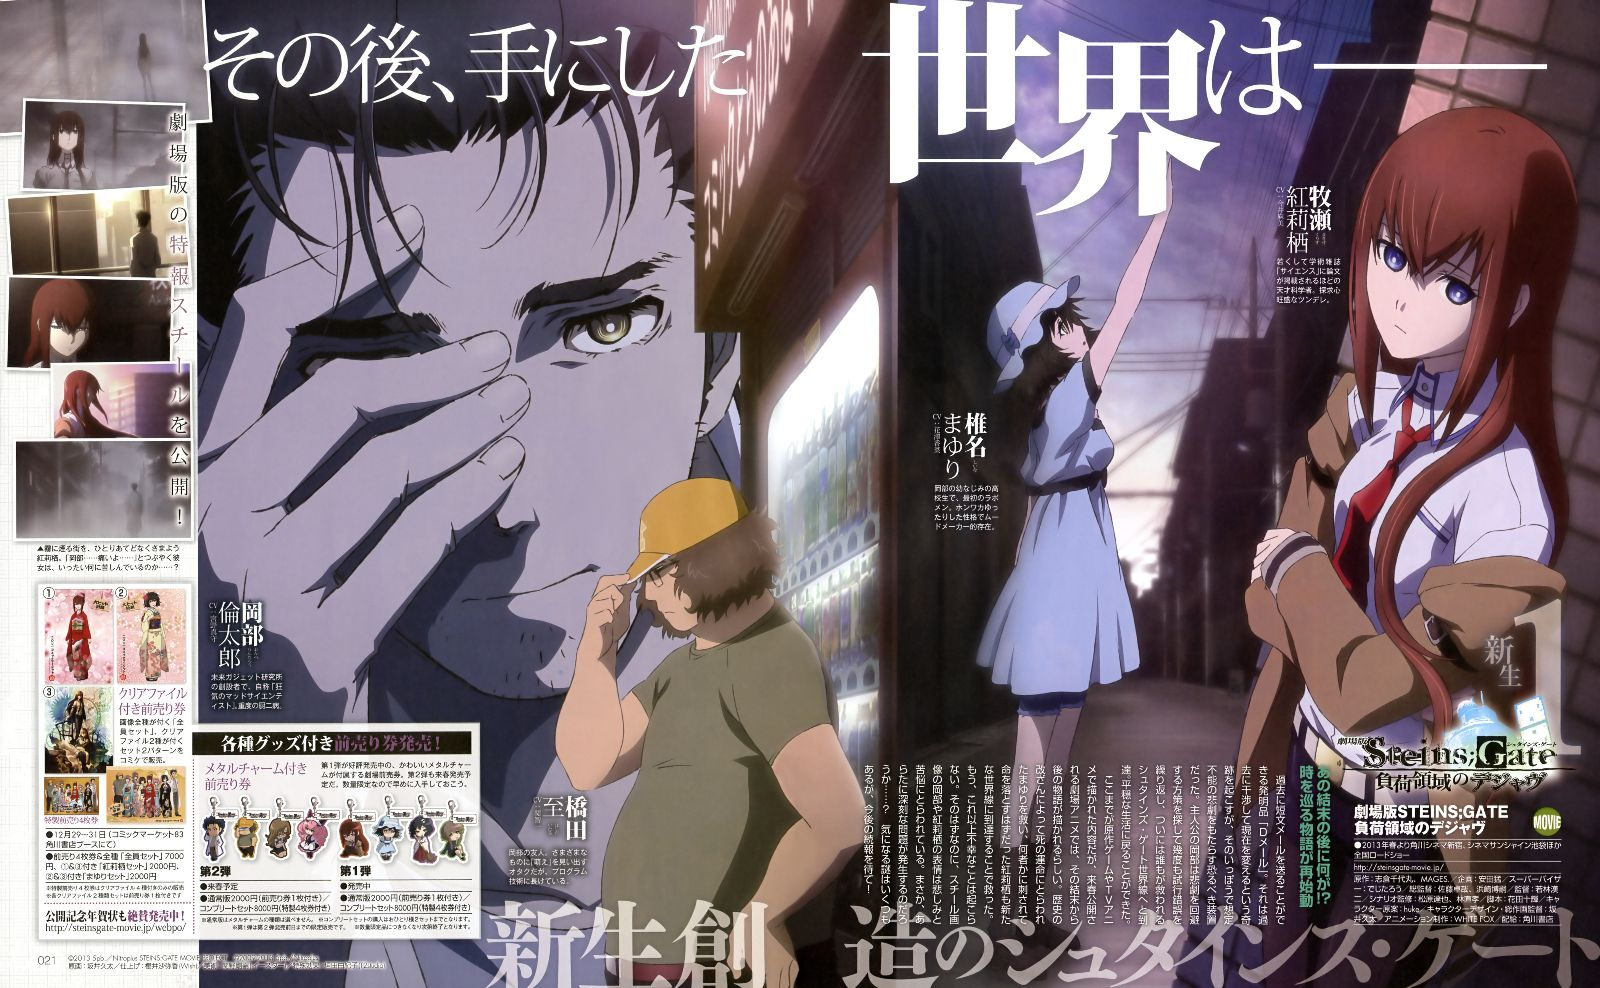 New Steins;Gate Movie Images pic 2